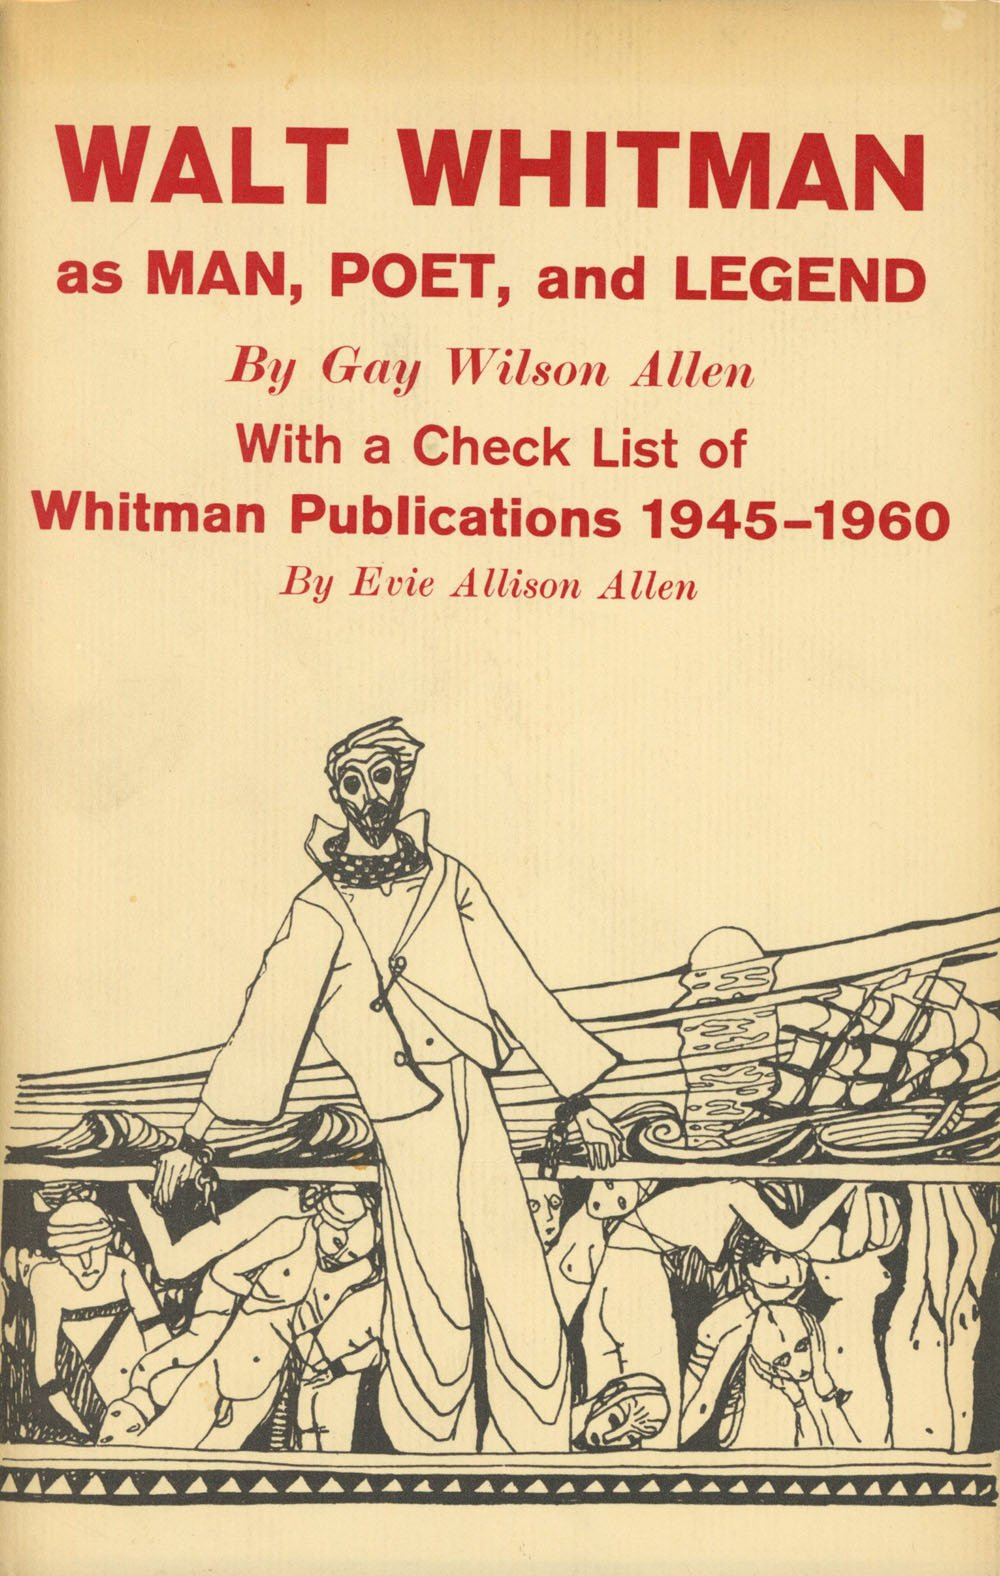 Walt Whitman as Man, Poet, and Legend: With a Check List of Whitman Publications, 1945-1960 PDF